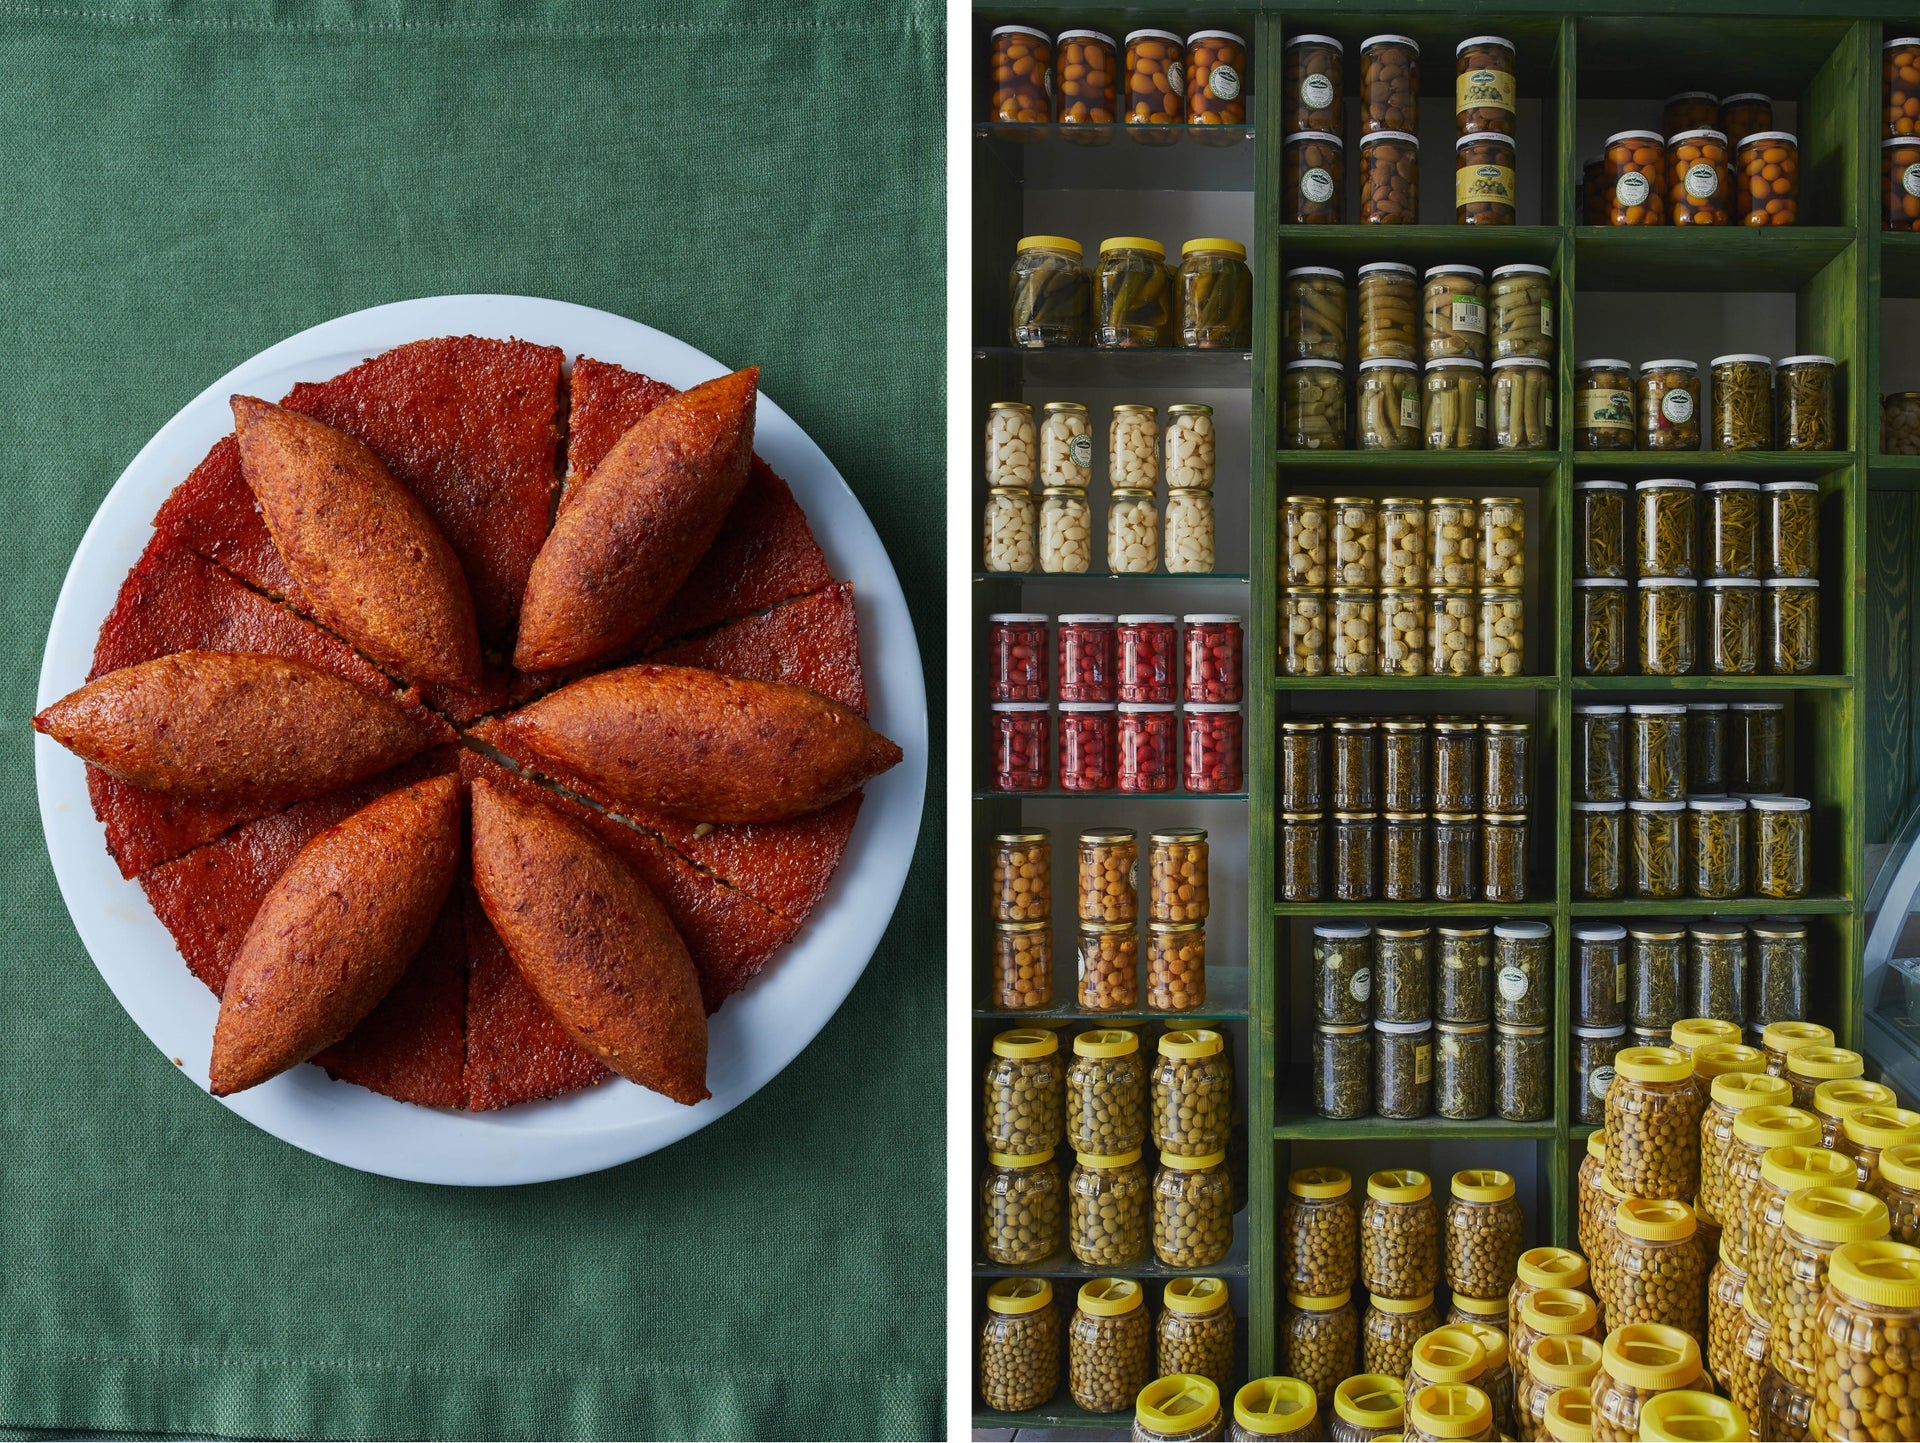 Kibbe and locally made pickles.